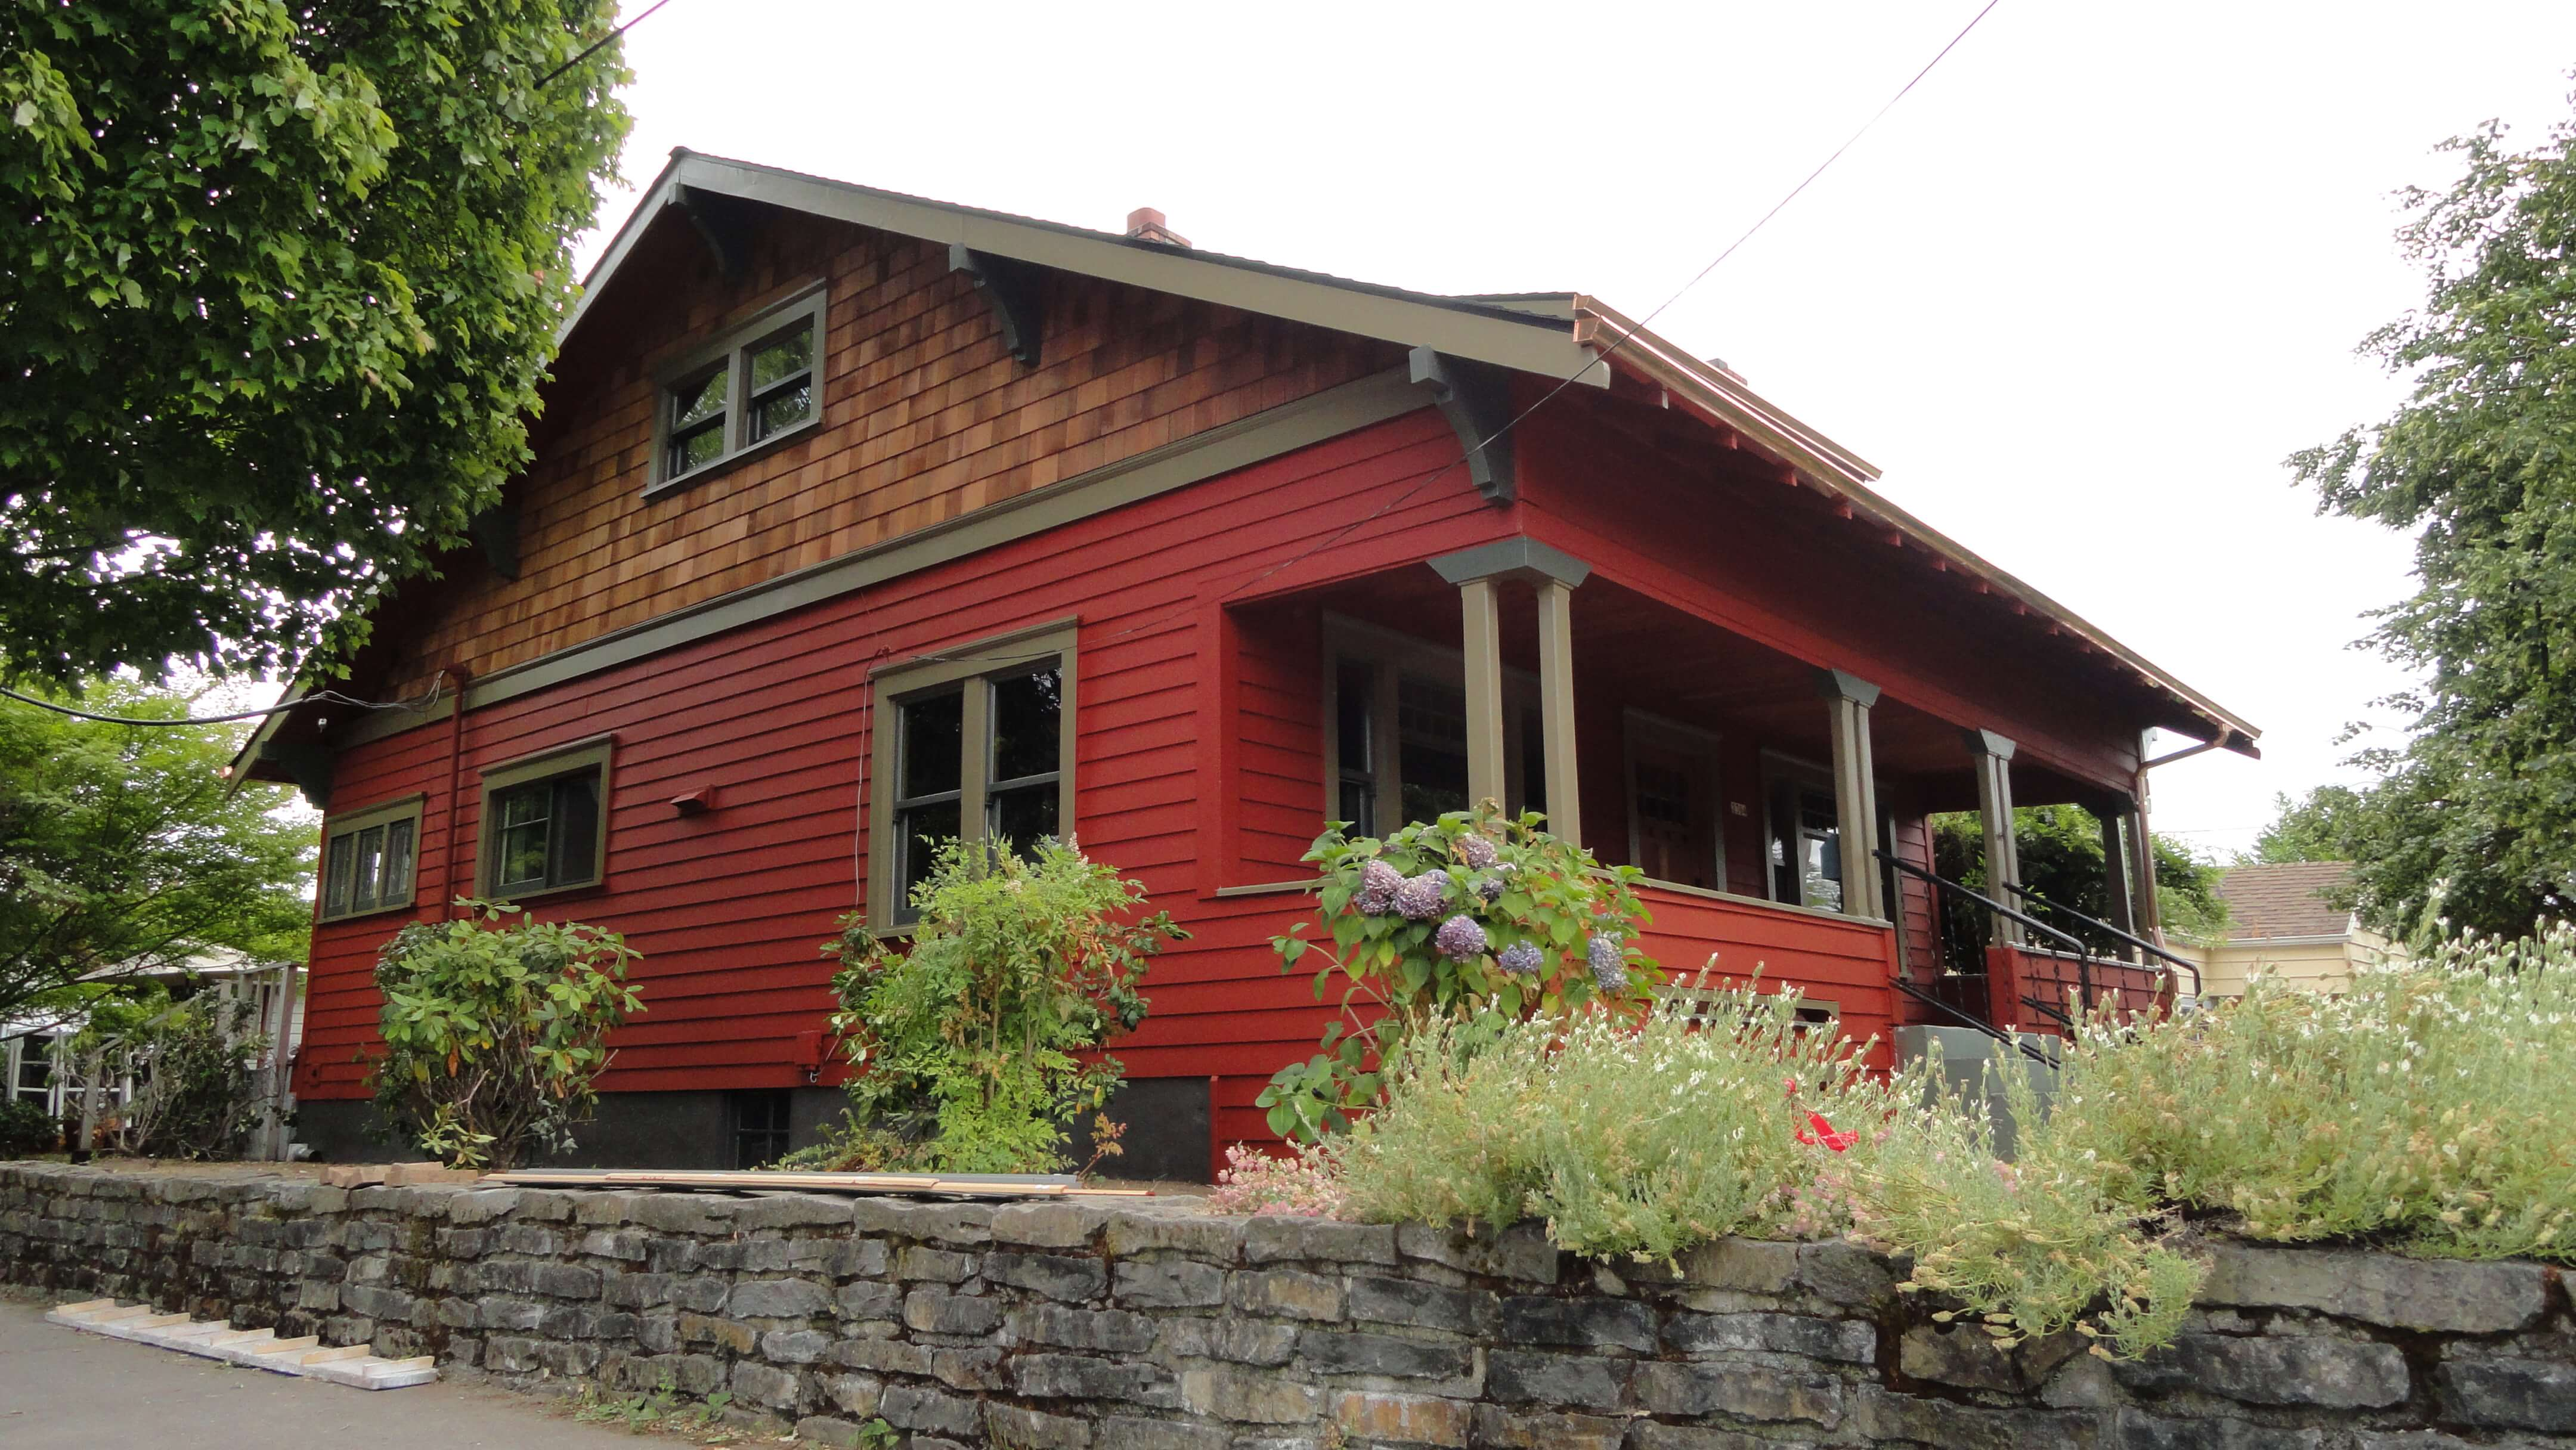 CEDAR LAP SIDING RED HOUSE